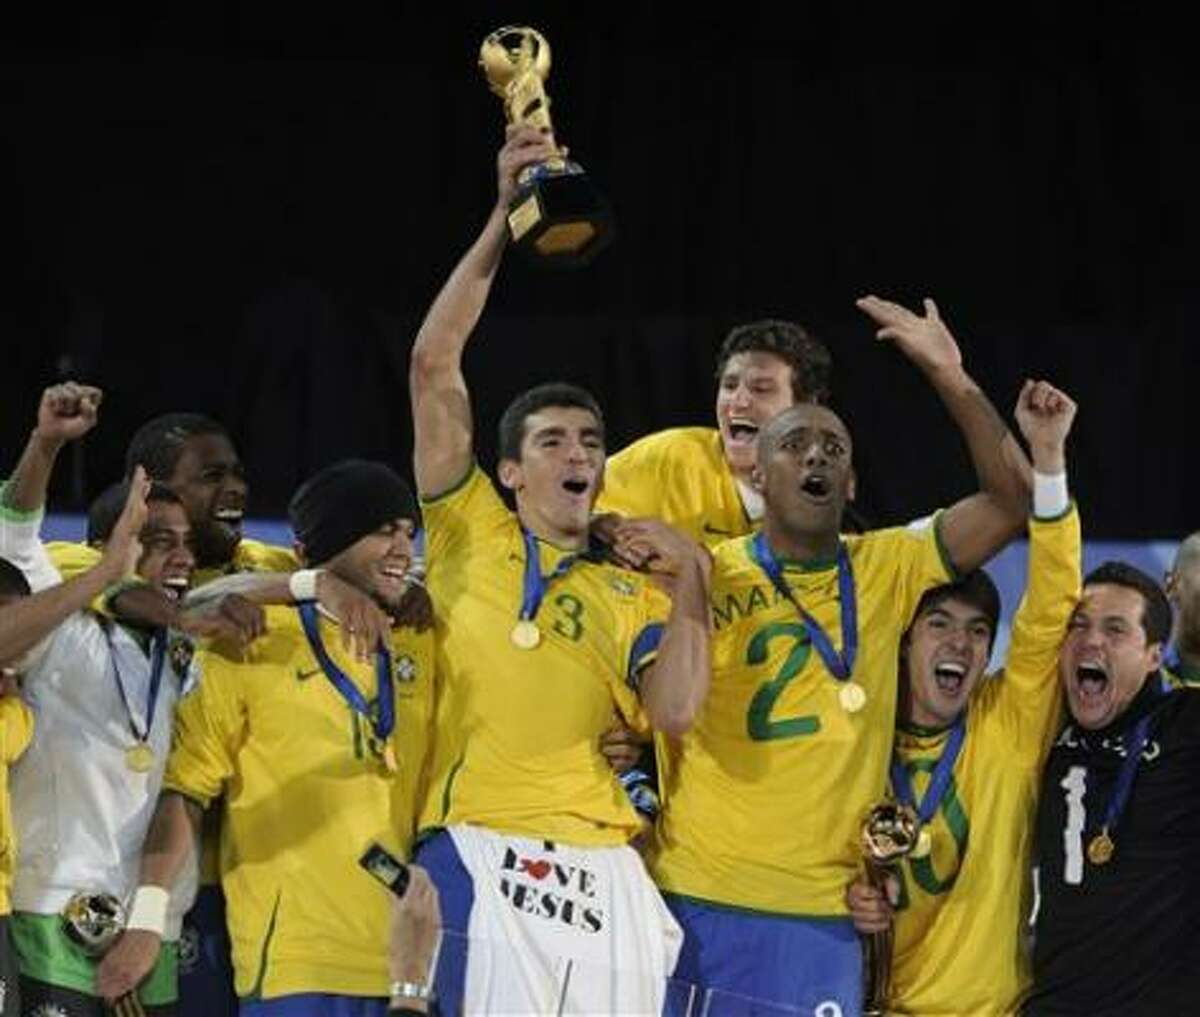 Brazil 3, United States 2 Brazil players celebrate after repeating as Confederations Cup champions.